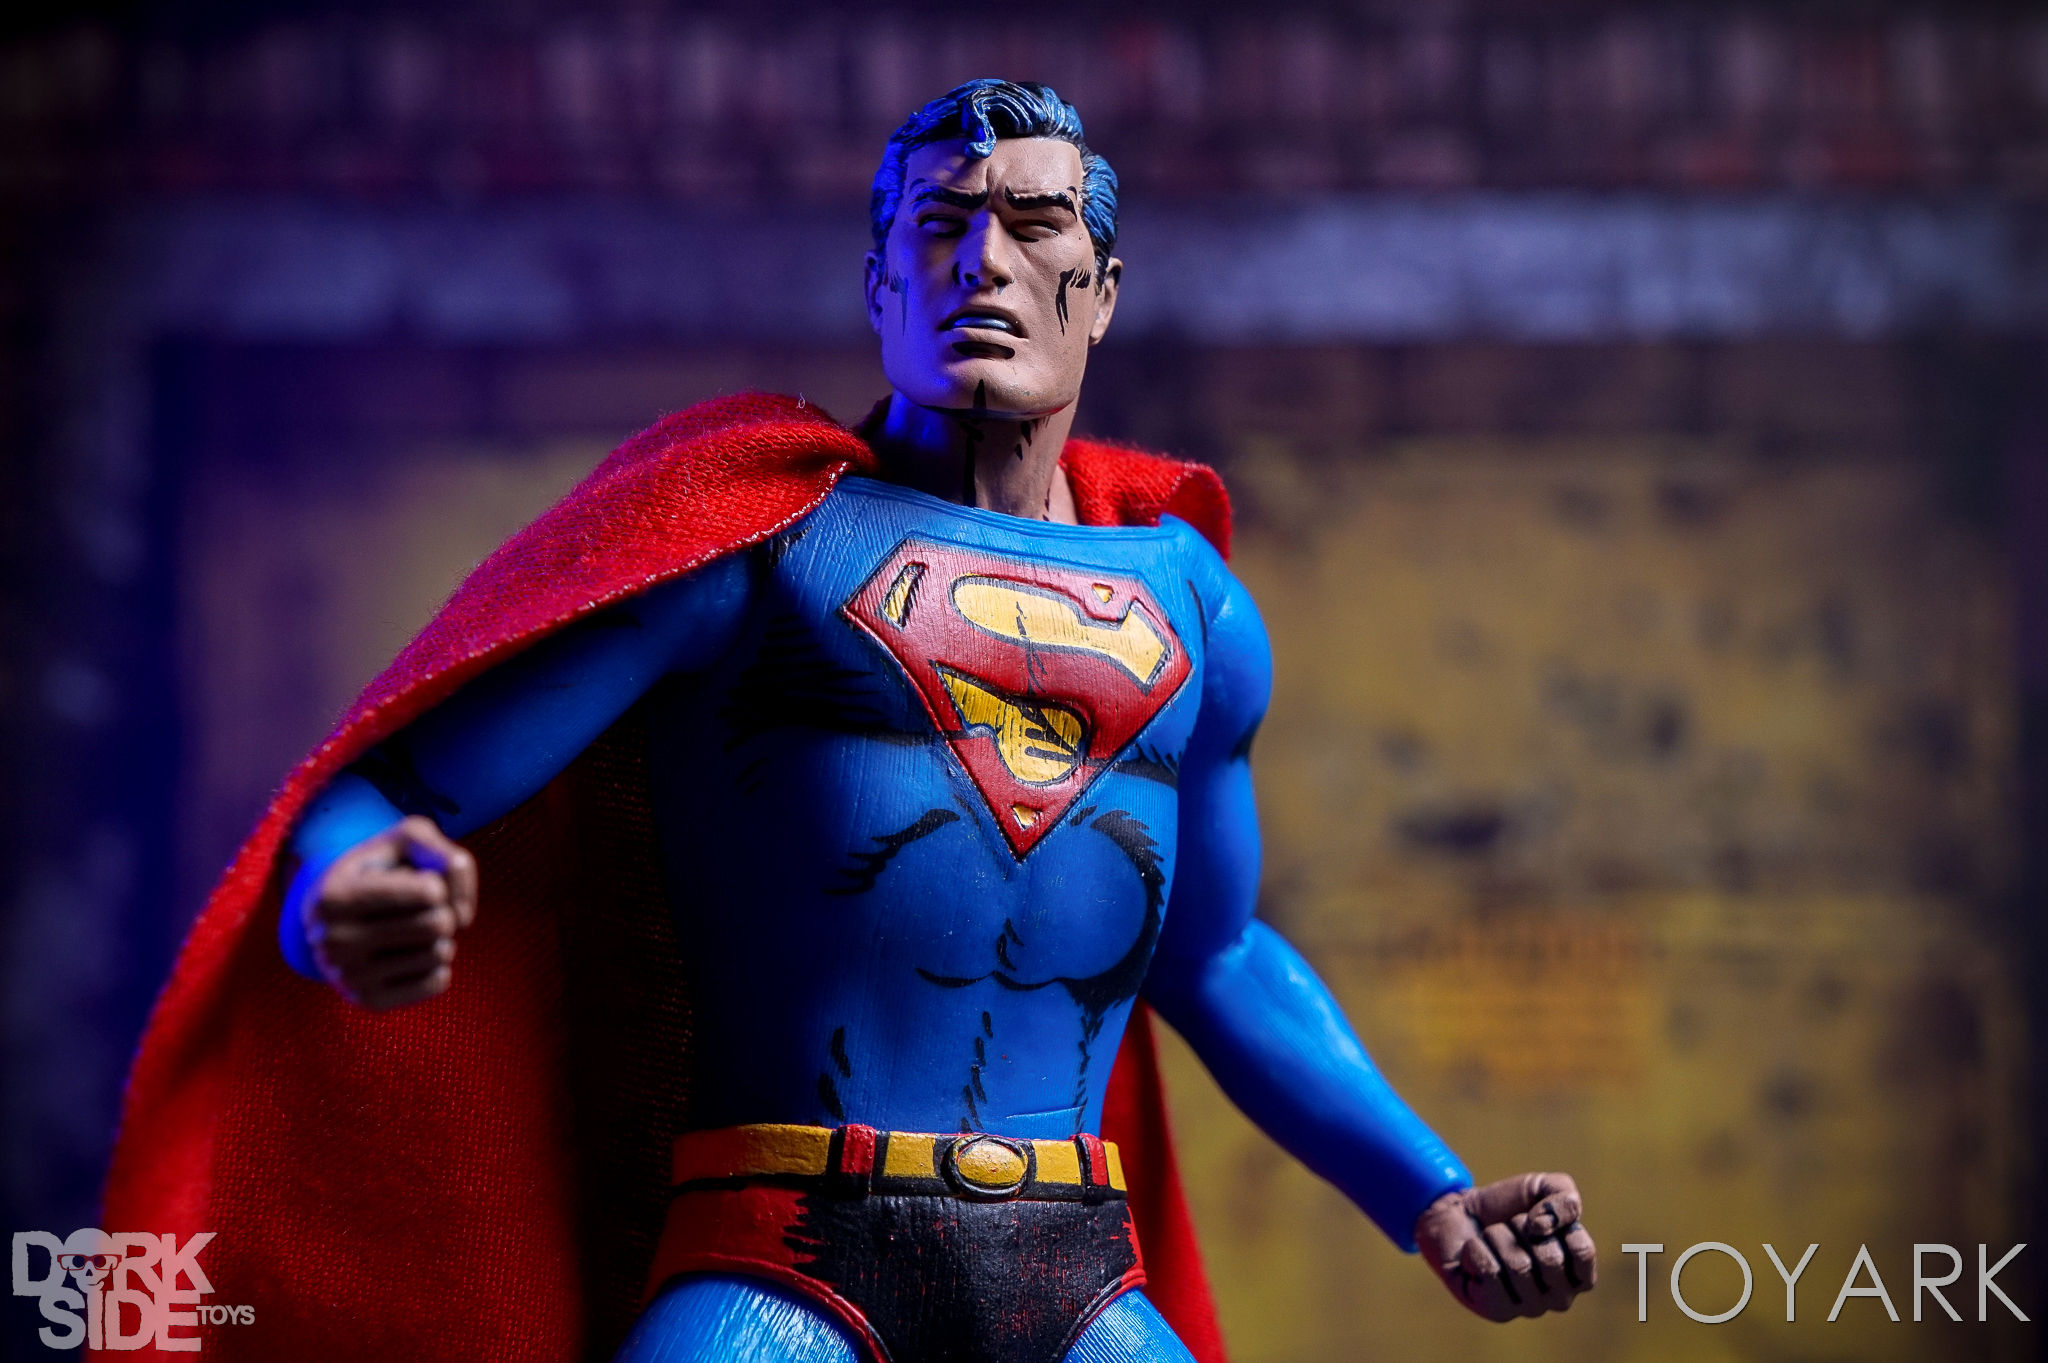 http://news.toyark.com/wp-content/uploads/sites/4/2017/02/NECA-Ali-vs-Superman-Set-044.jpg